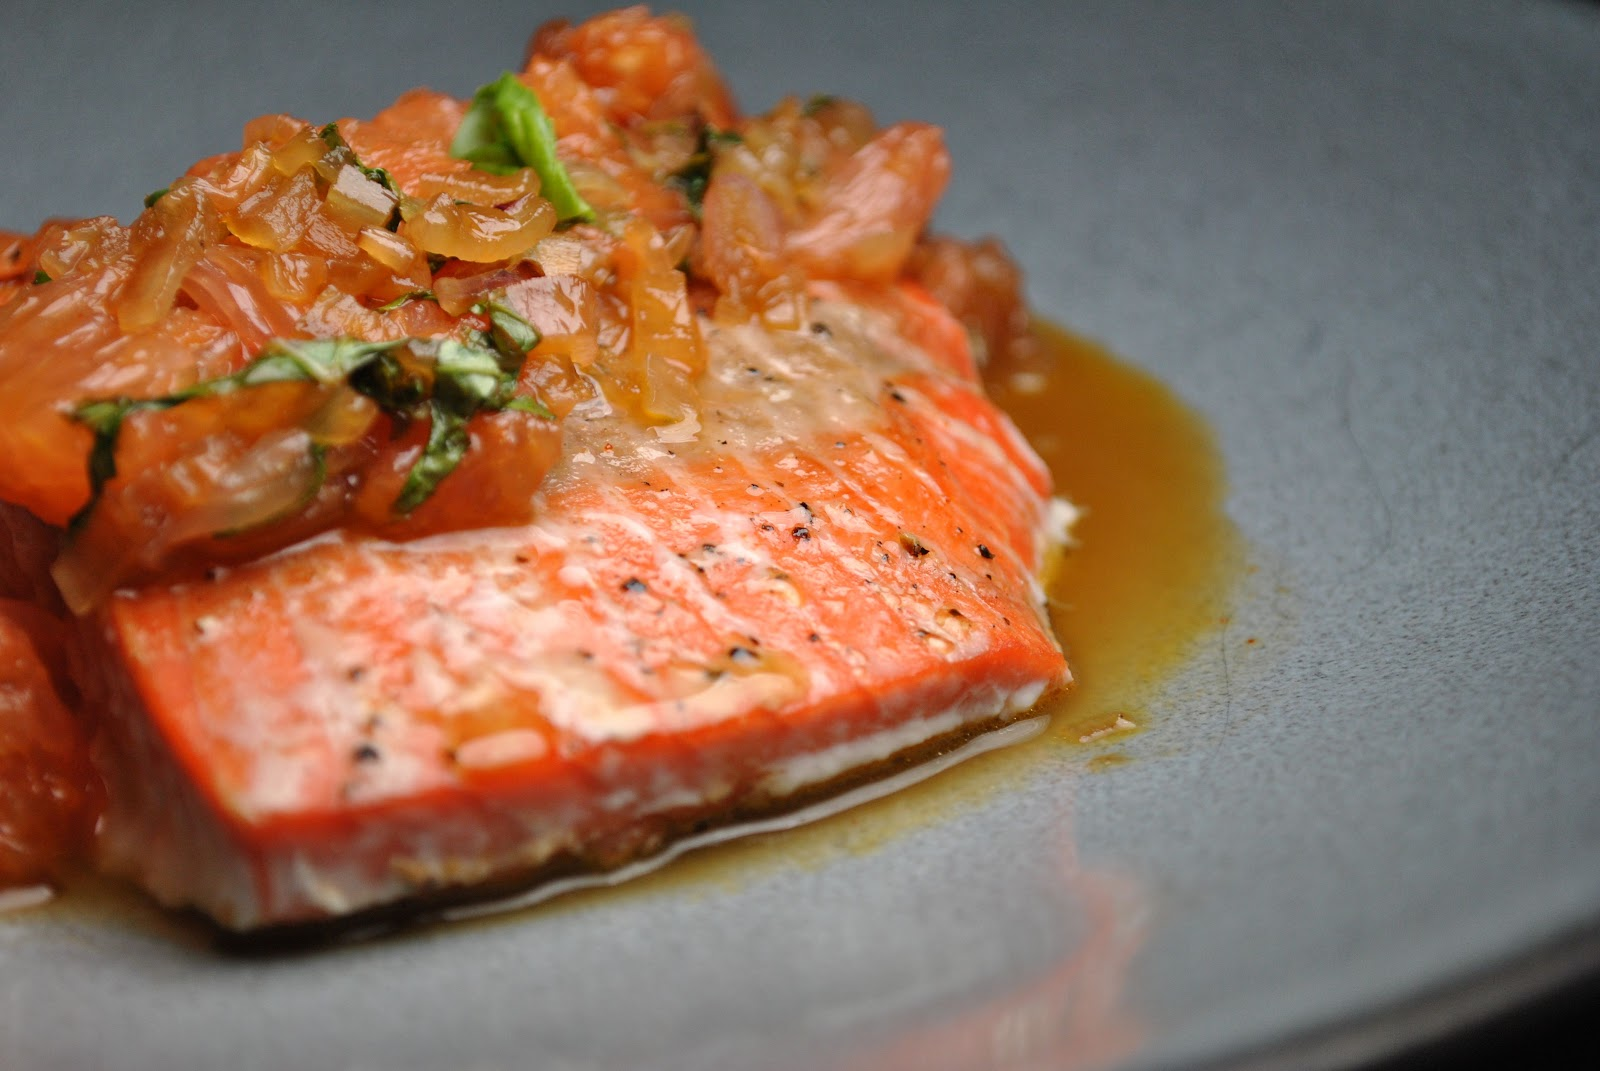 My Table, Their Table: Roasted Salmon with Shallot-Grapefruit Sauce